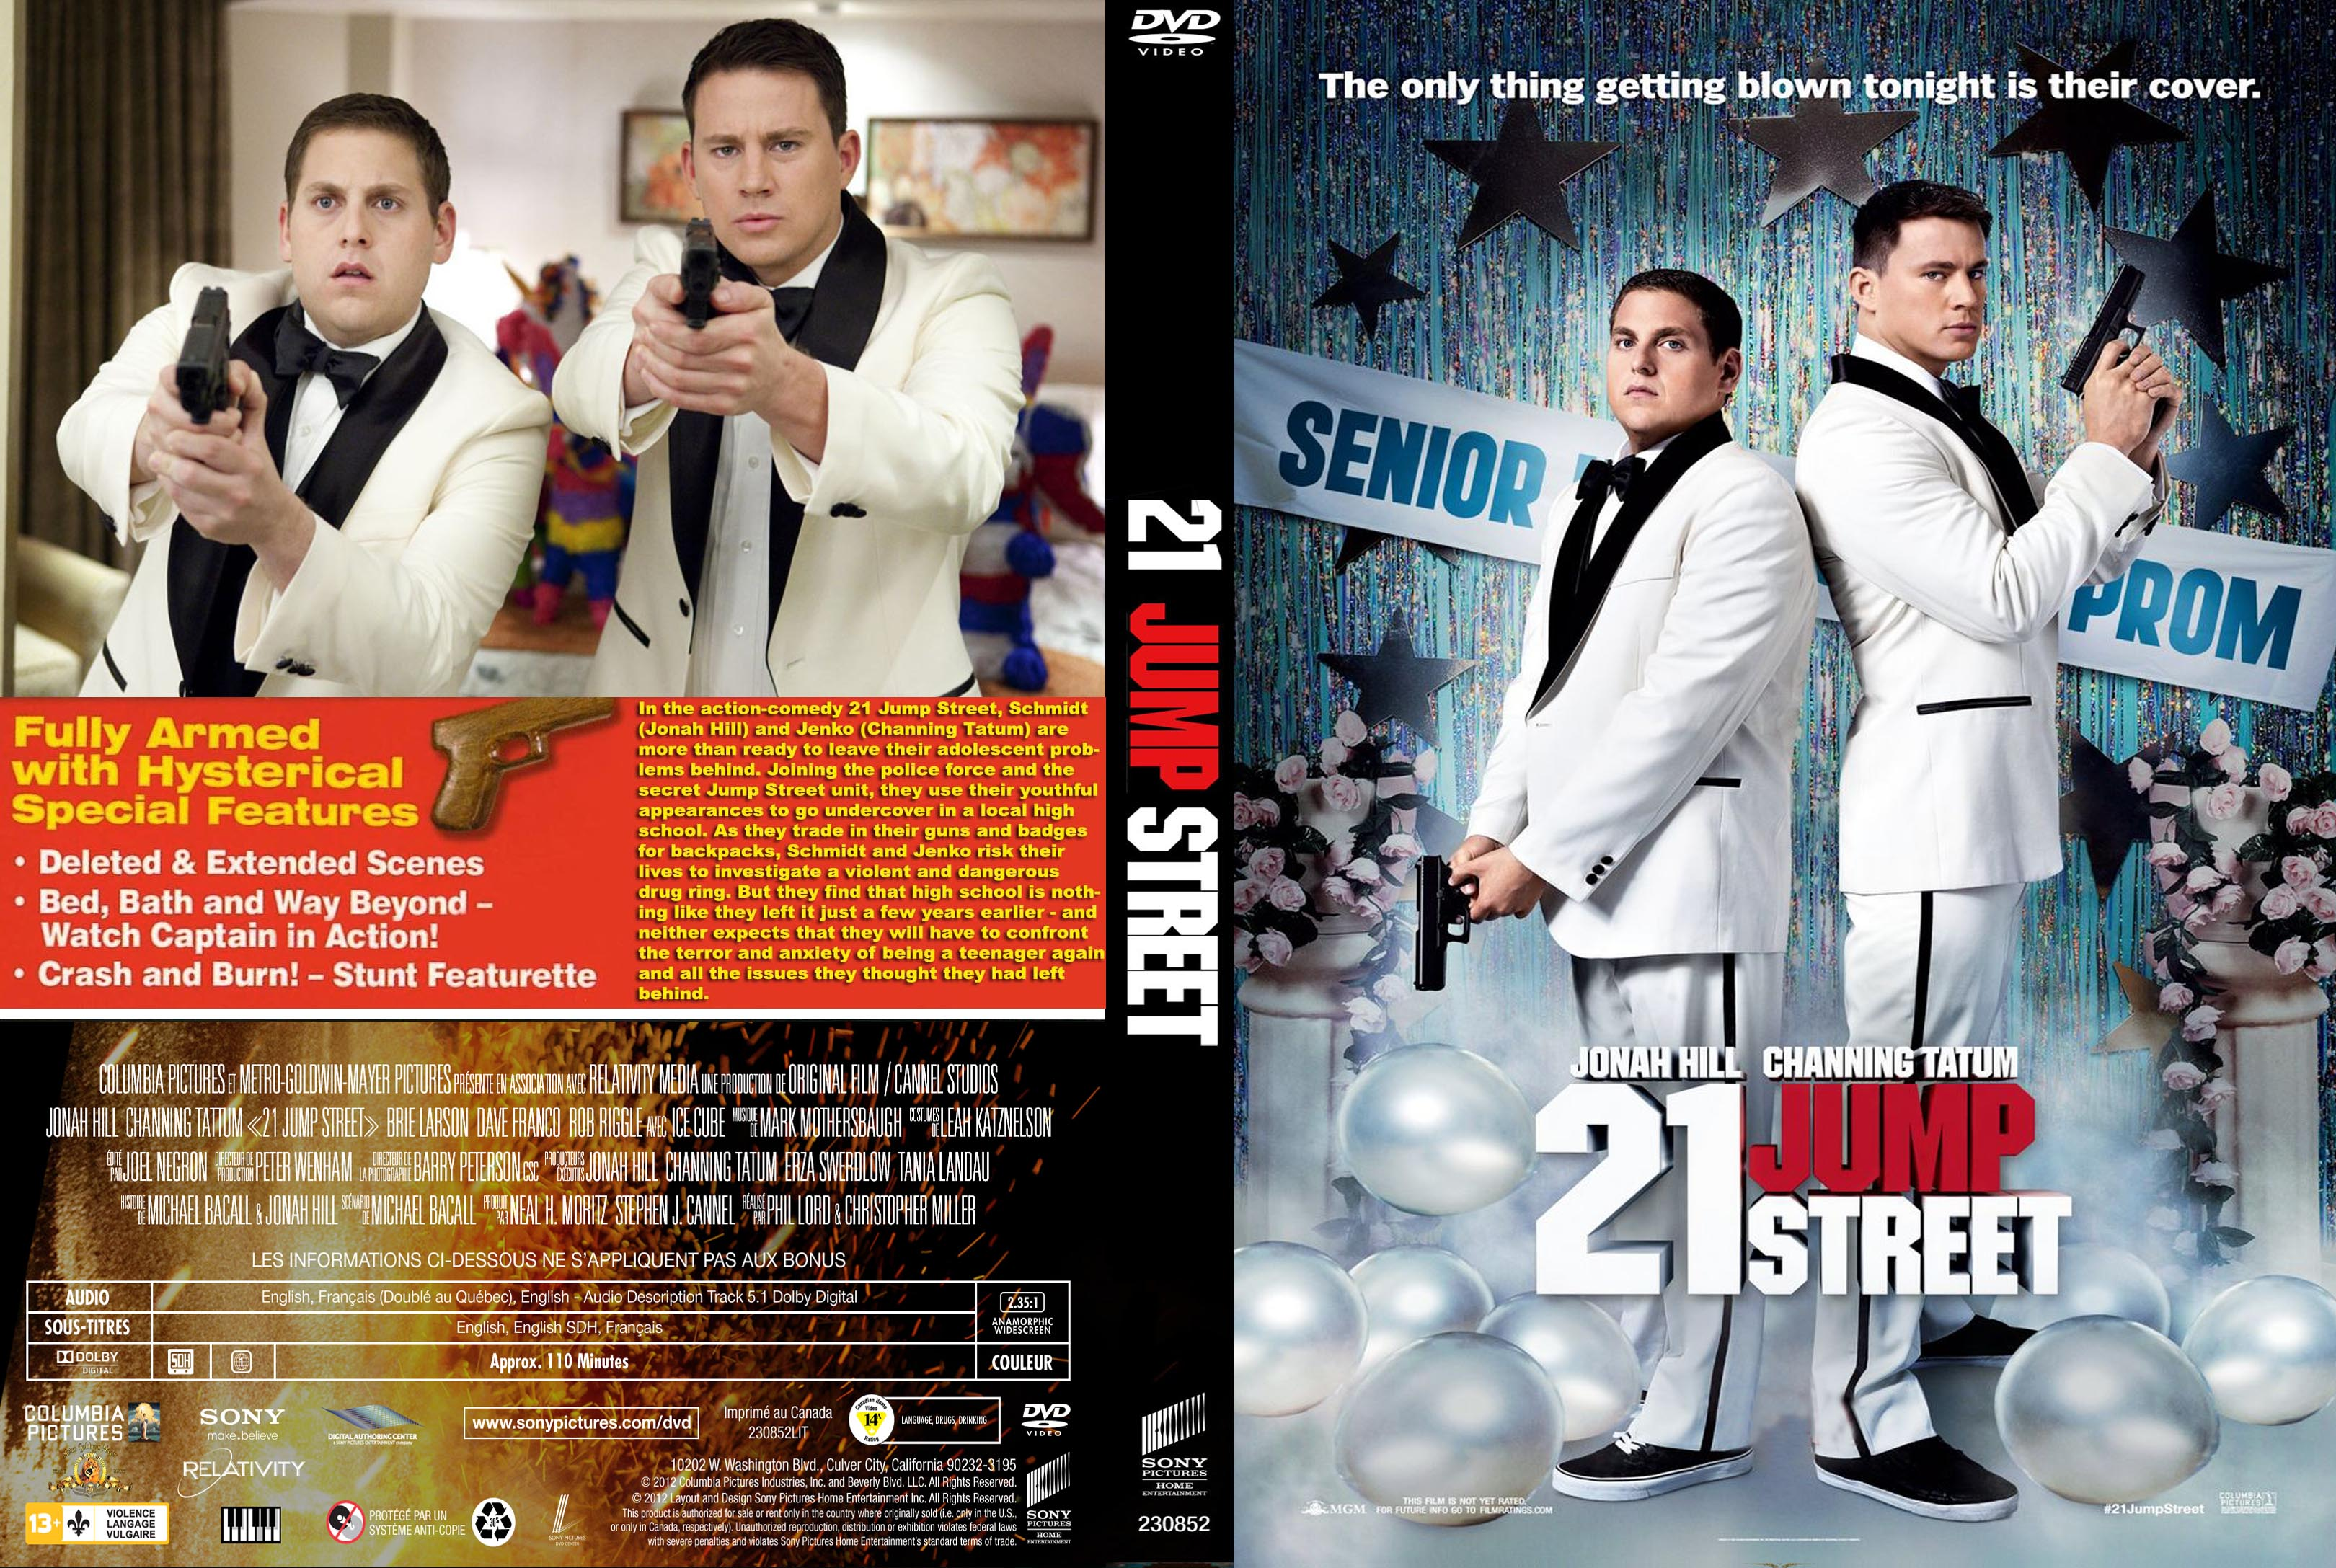 21 Jump Street Dvd Cover | www.imgkid.com - The Image Kid ...